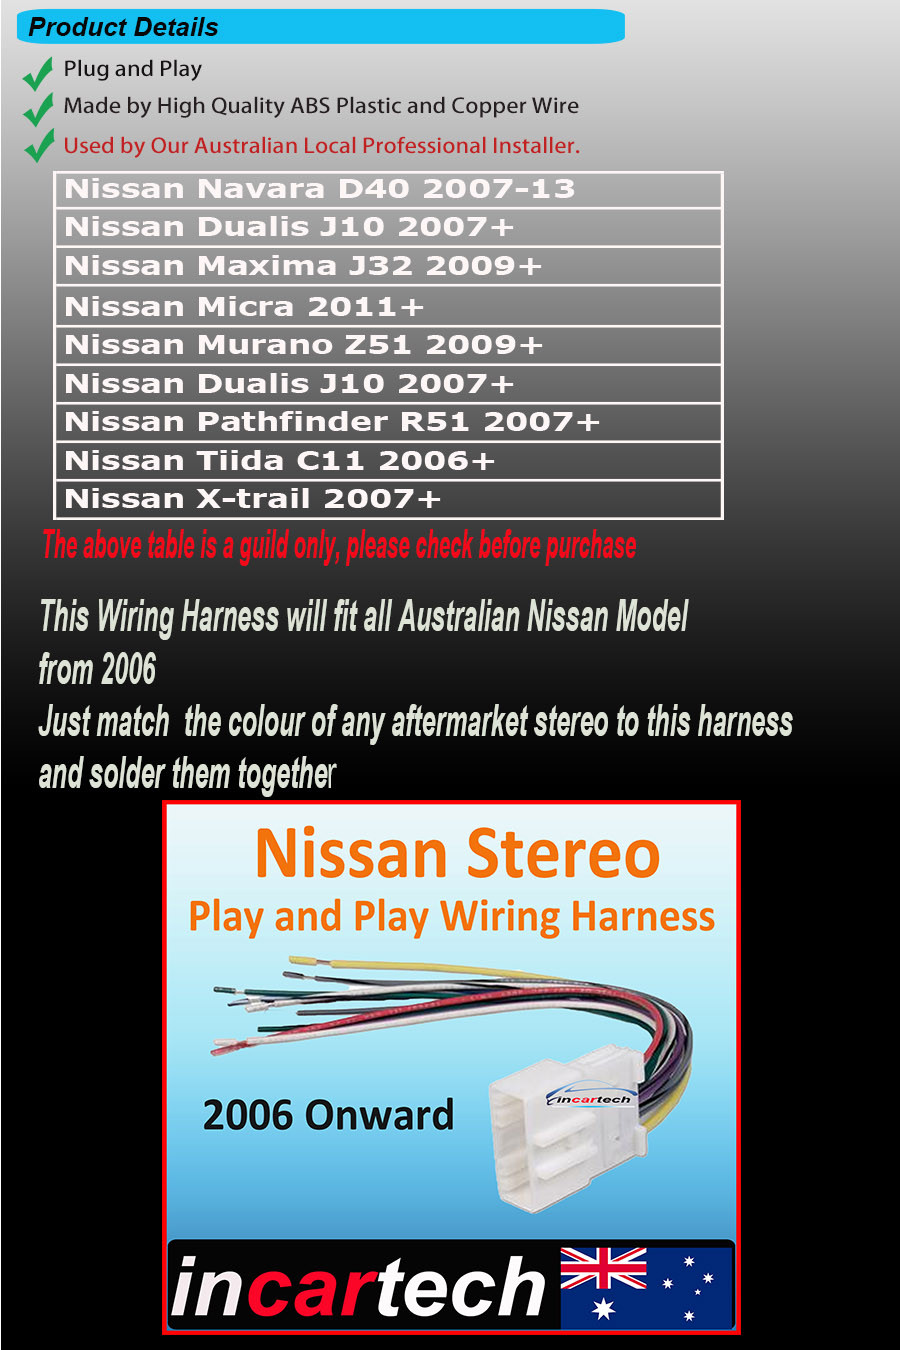 Nissan Wiring Harness Plug Loom Maxima Murano Navara Pathfinder Wire On 21 Oct 15 At 003415 Aedst Seller Added The Following Information